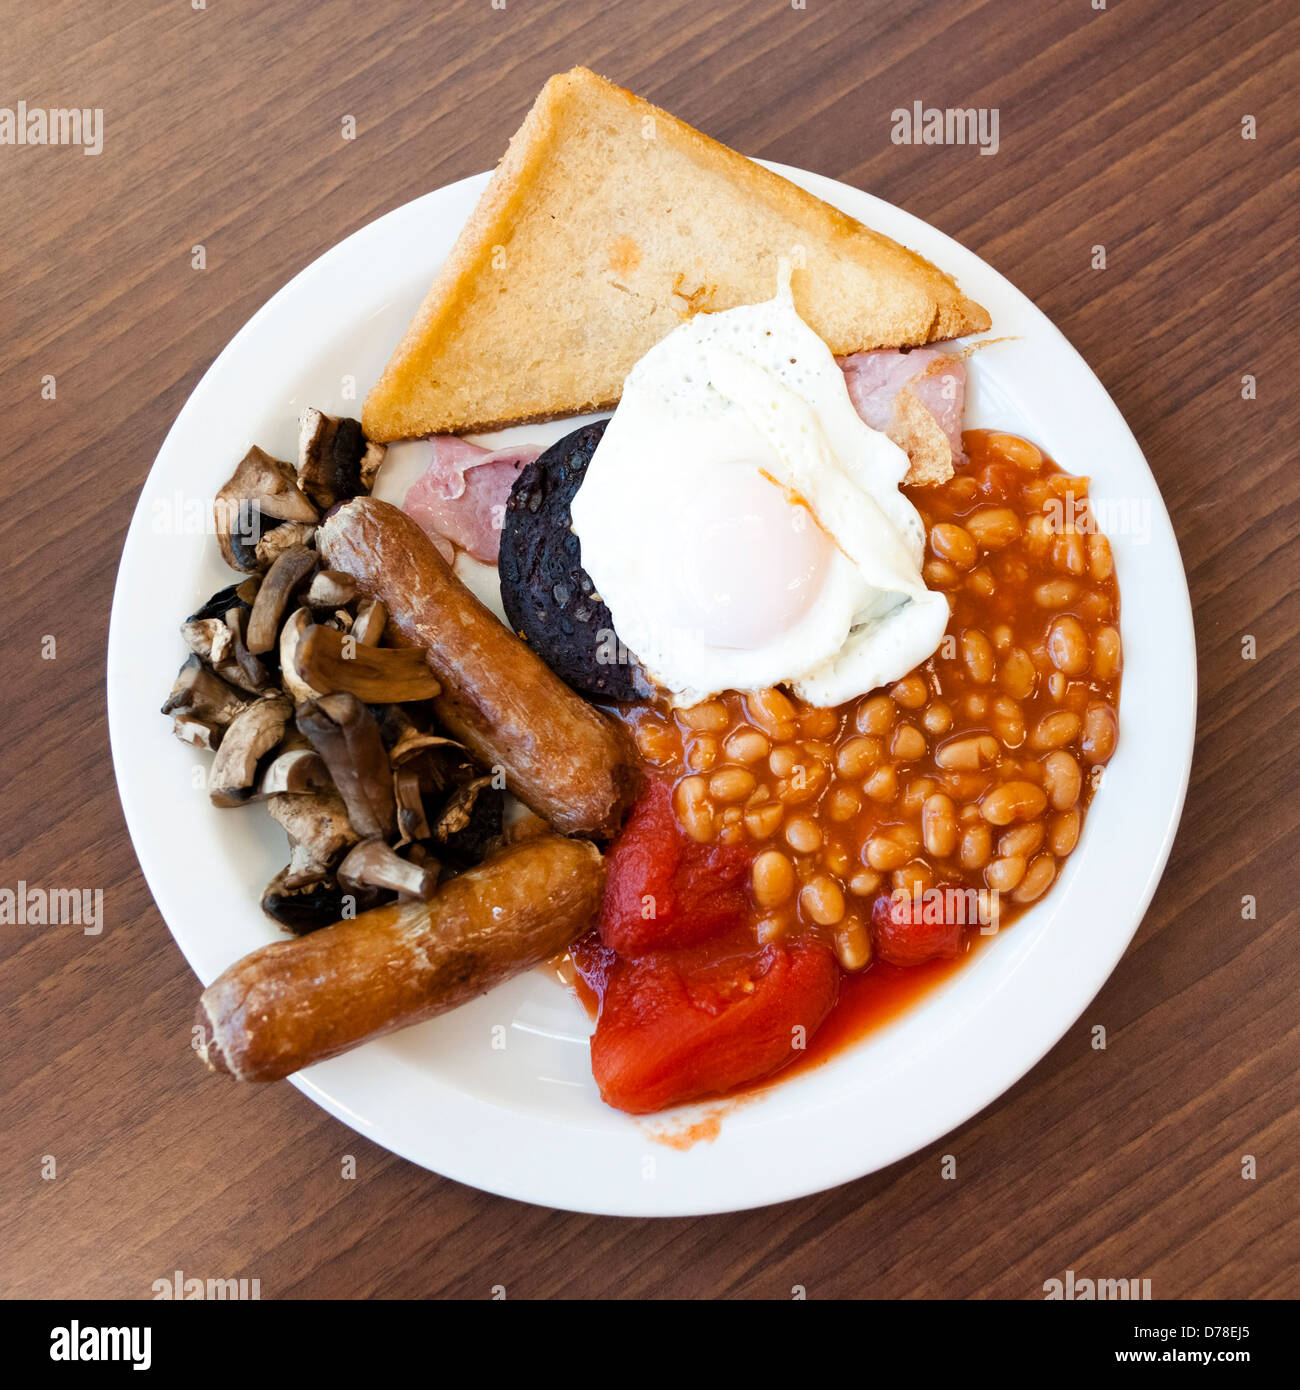 Full English breakfast, with black pudding fry up at a cafe. Fried breakfast overhead food UK. - Stock Image